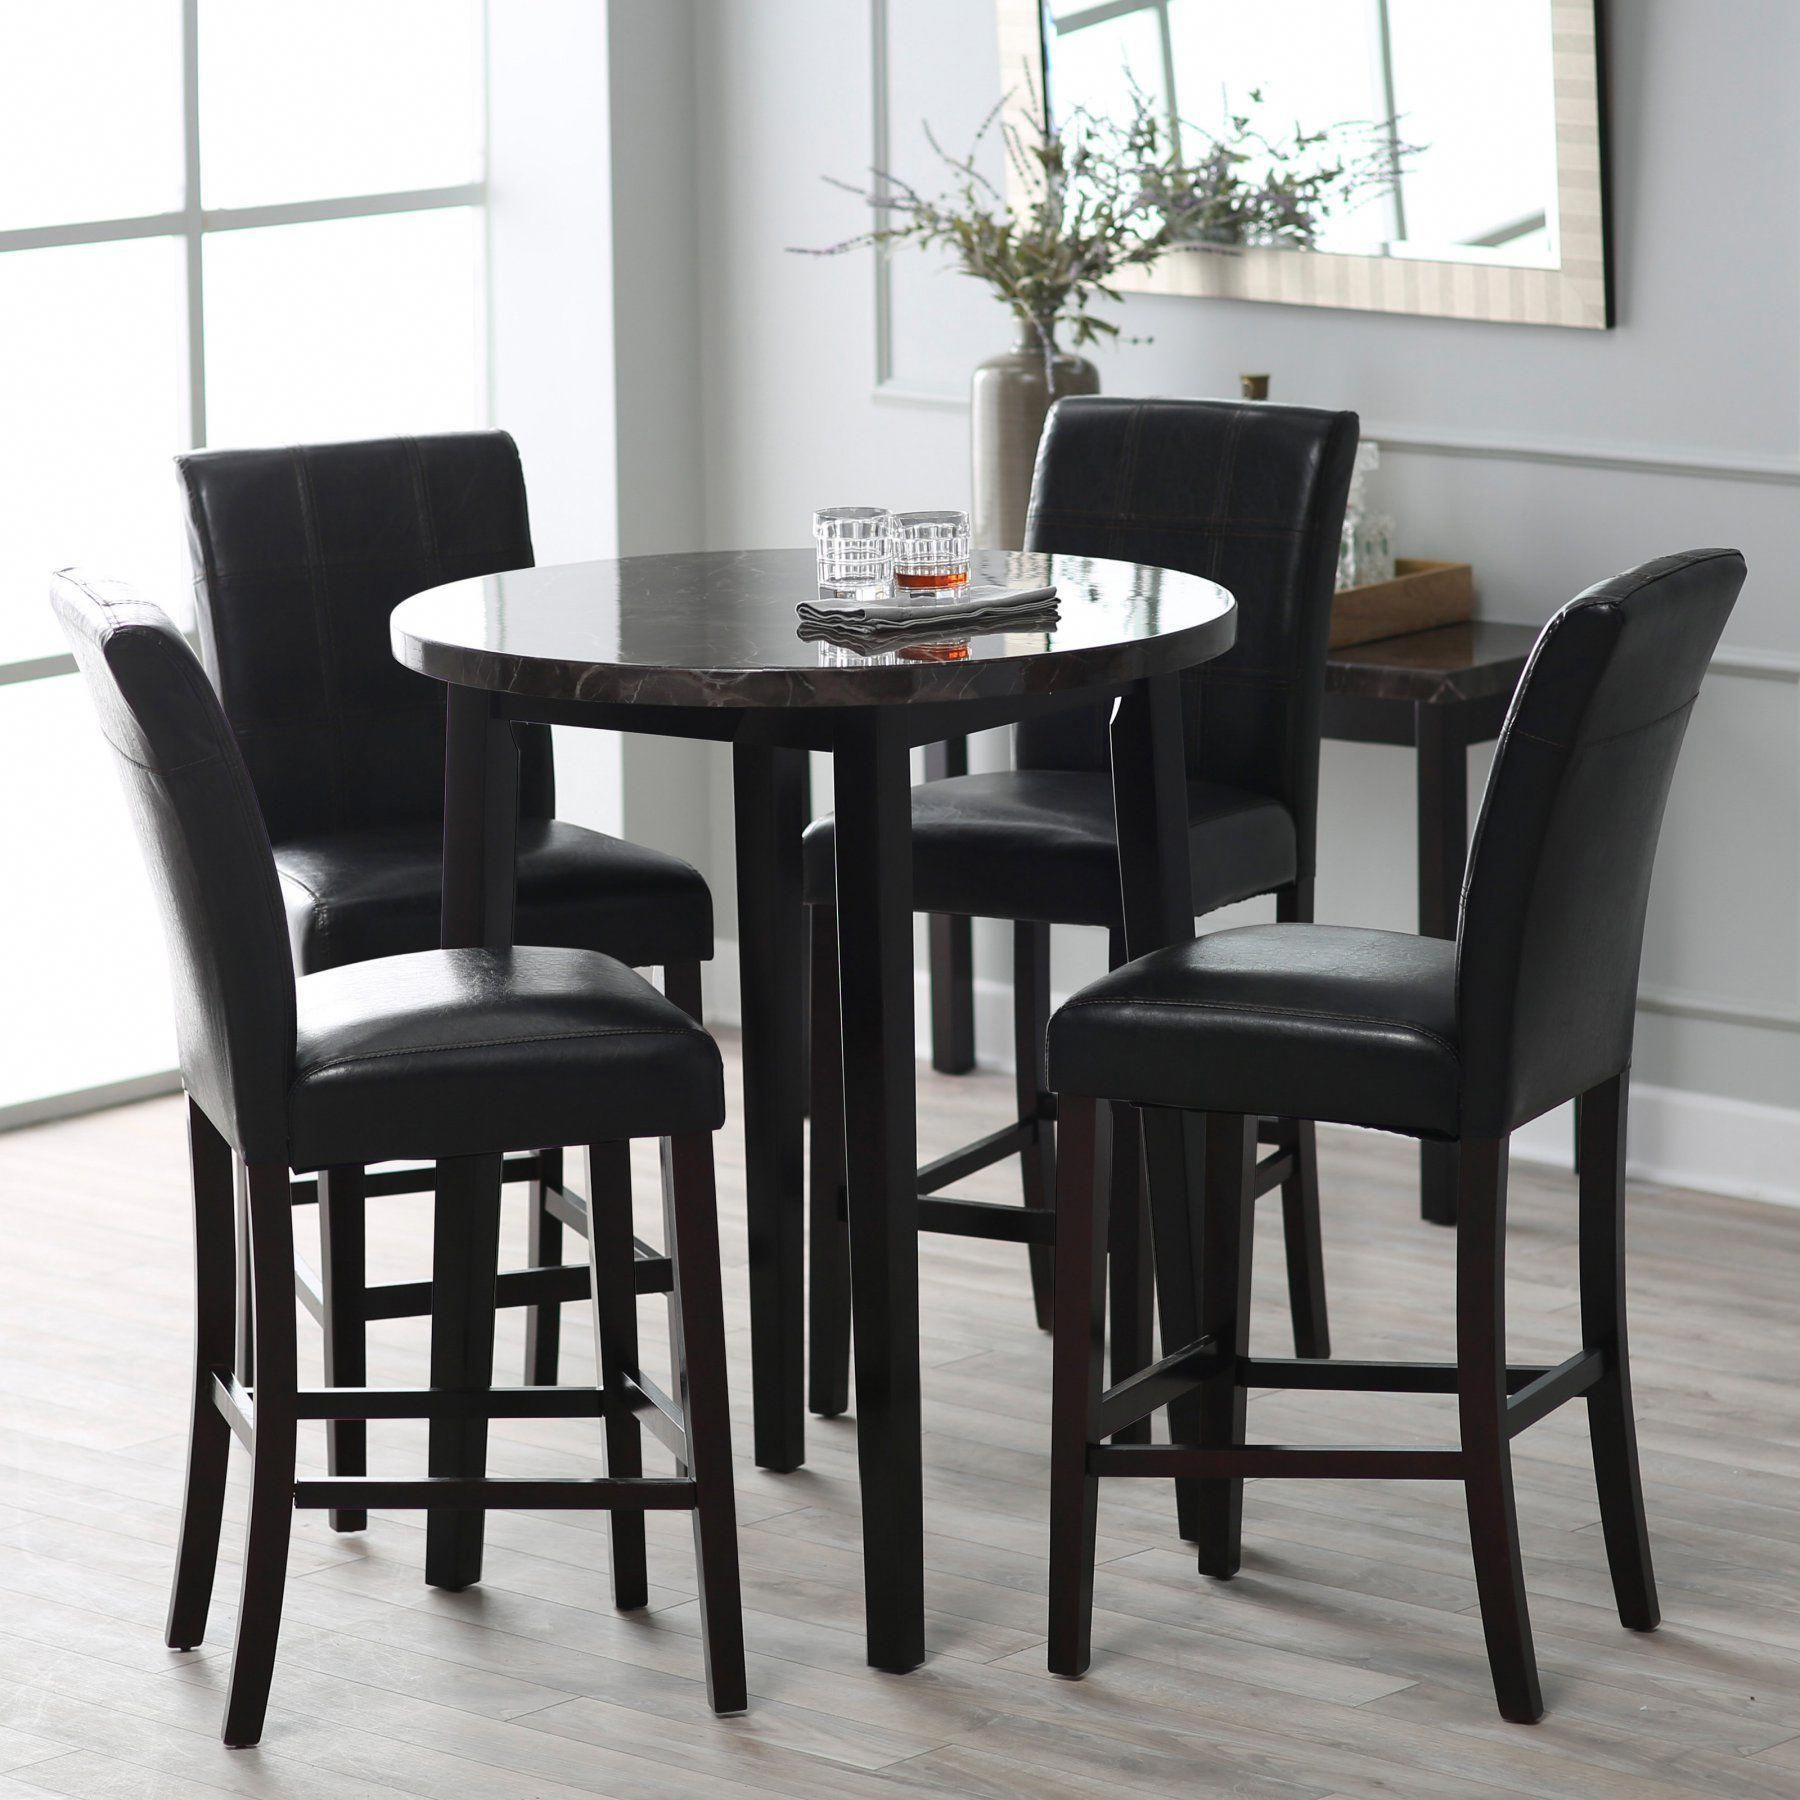 Excellent Pub Set Kitchen Detail Is Available On Our Web Pages Check It Out And You Wont Be Sorry You Did Pubse Pub Table Sets Pub Table Pub Kitchen Table